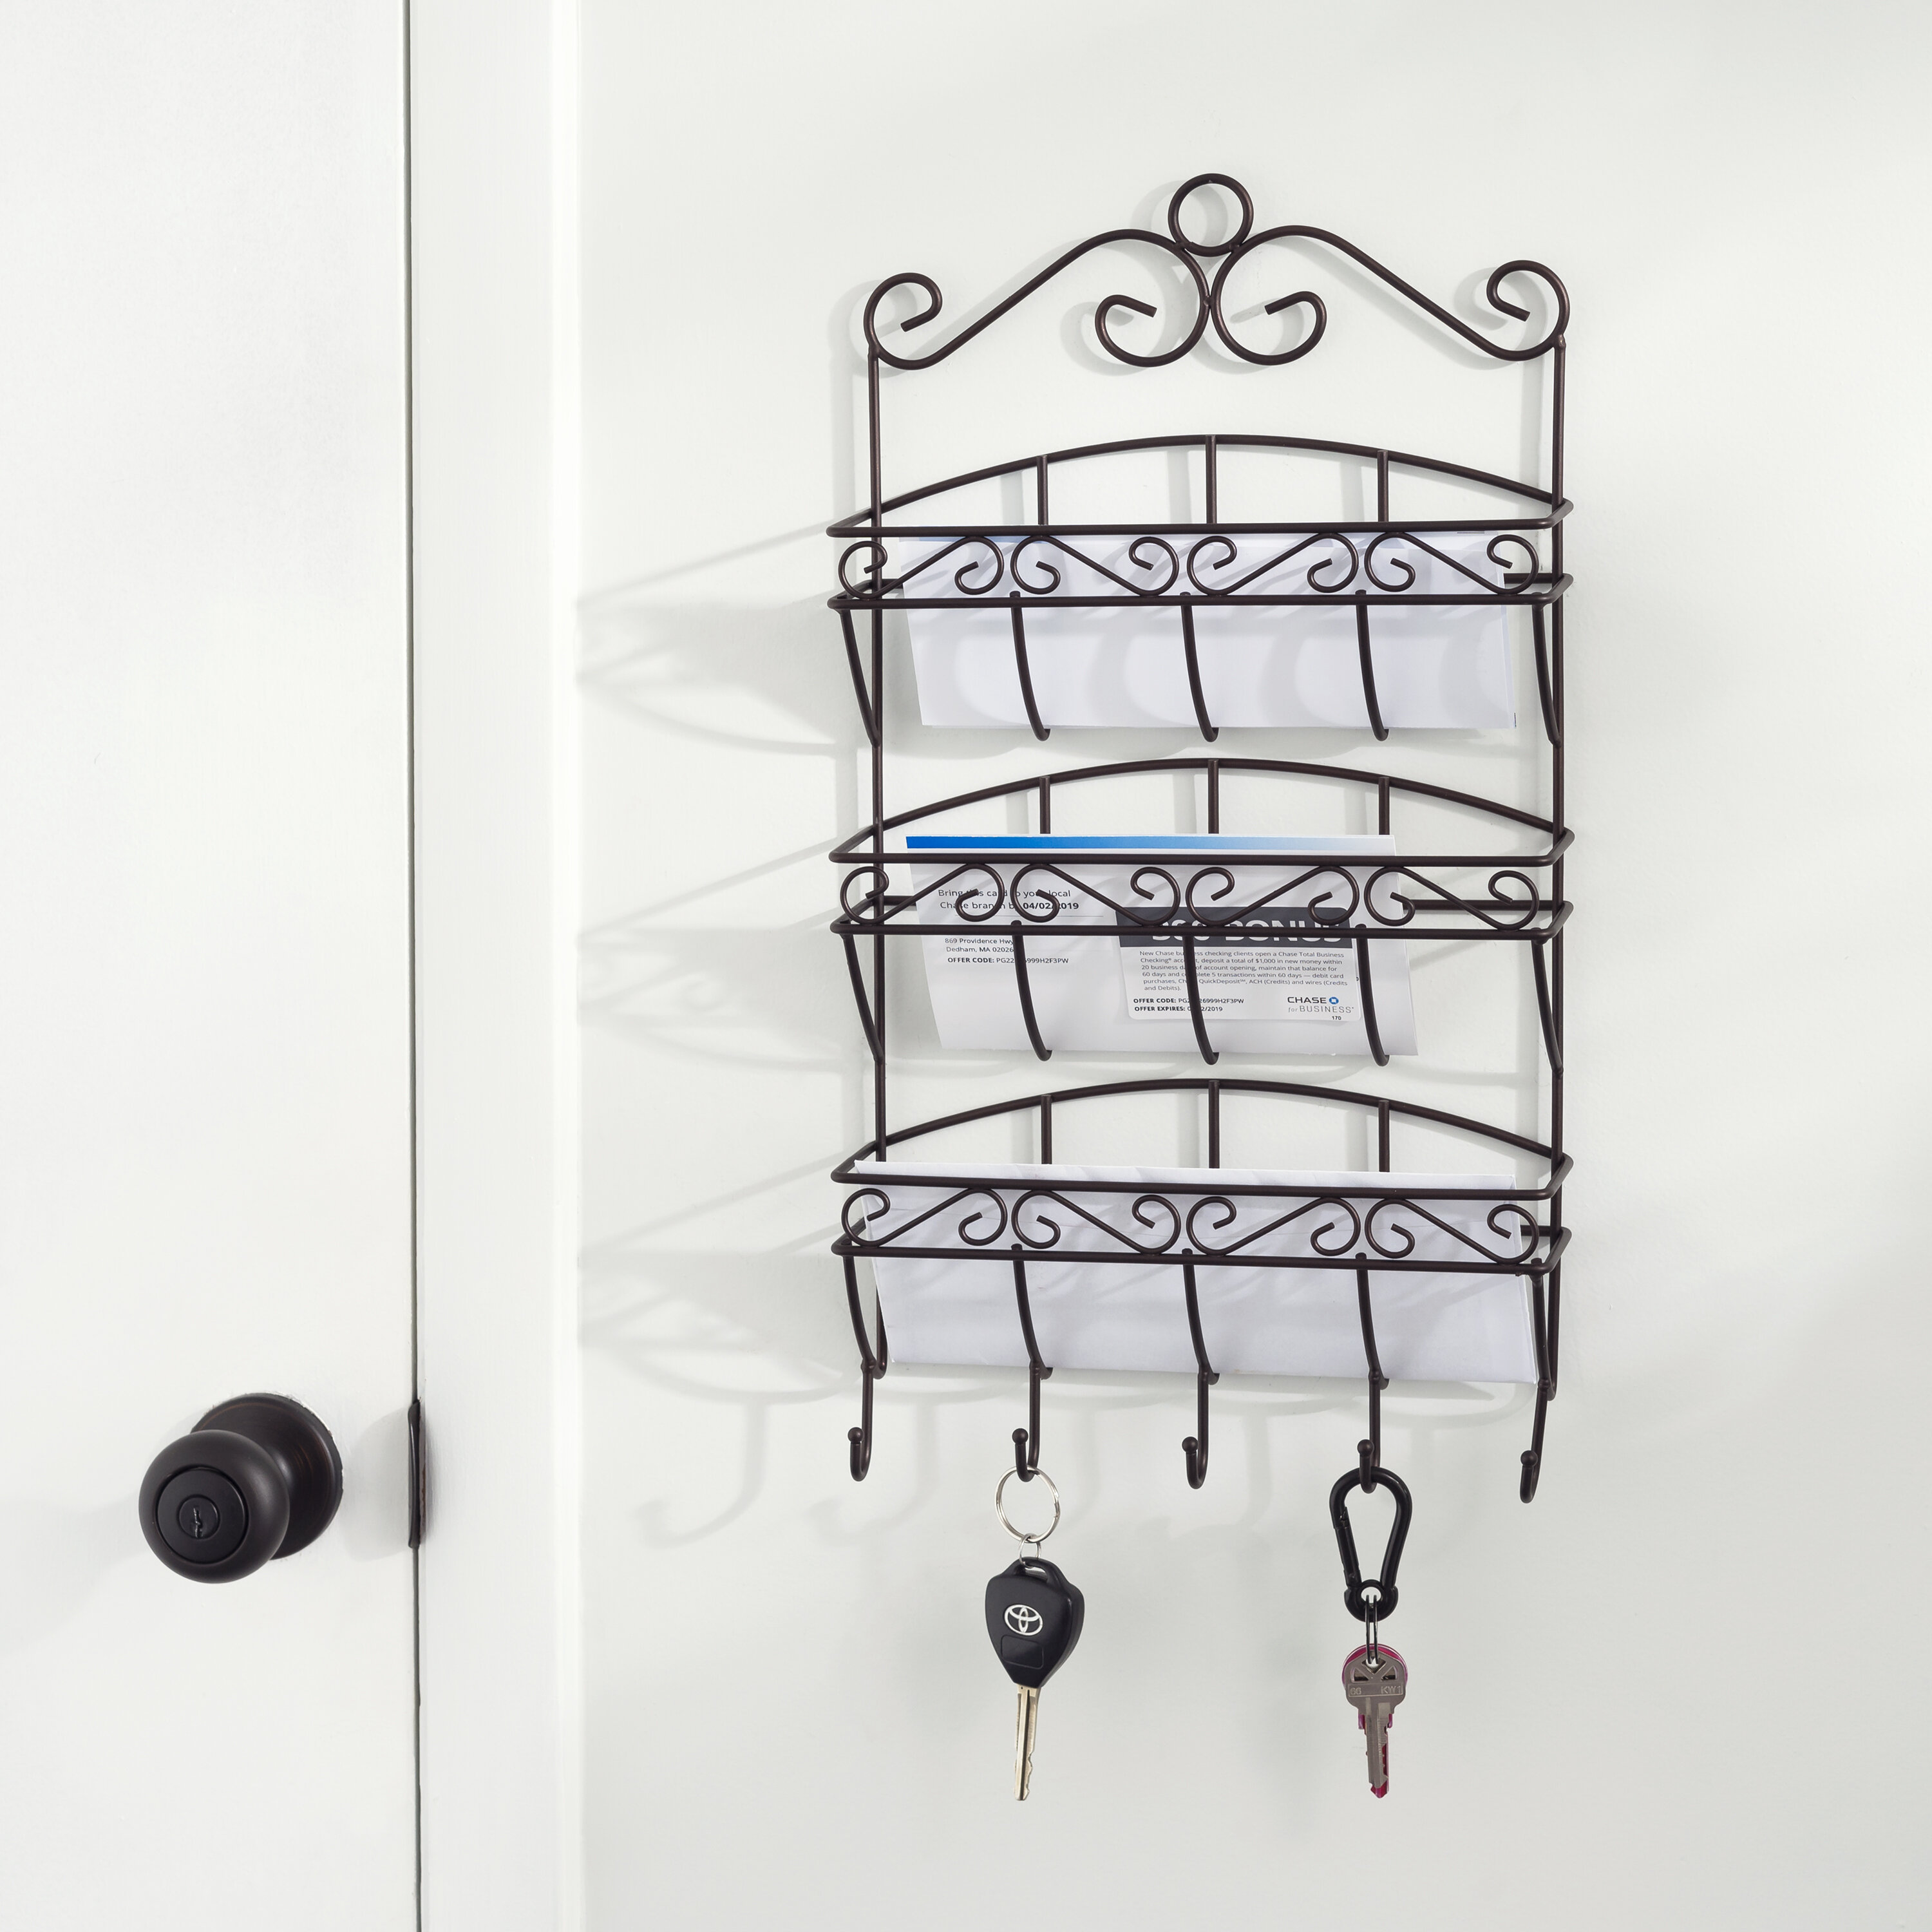 Izidora Scroll 3 Tier Steel Letter Rack Wall Key Organizer with Wall Basket